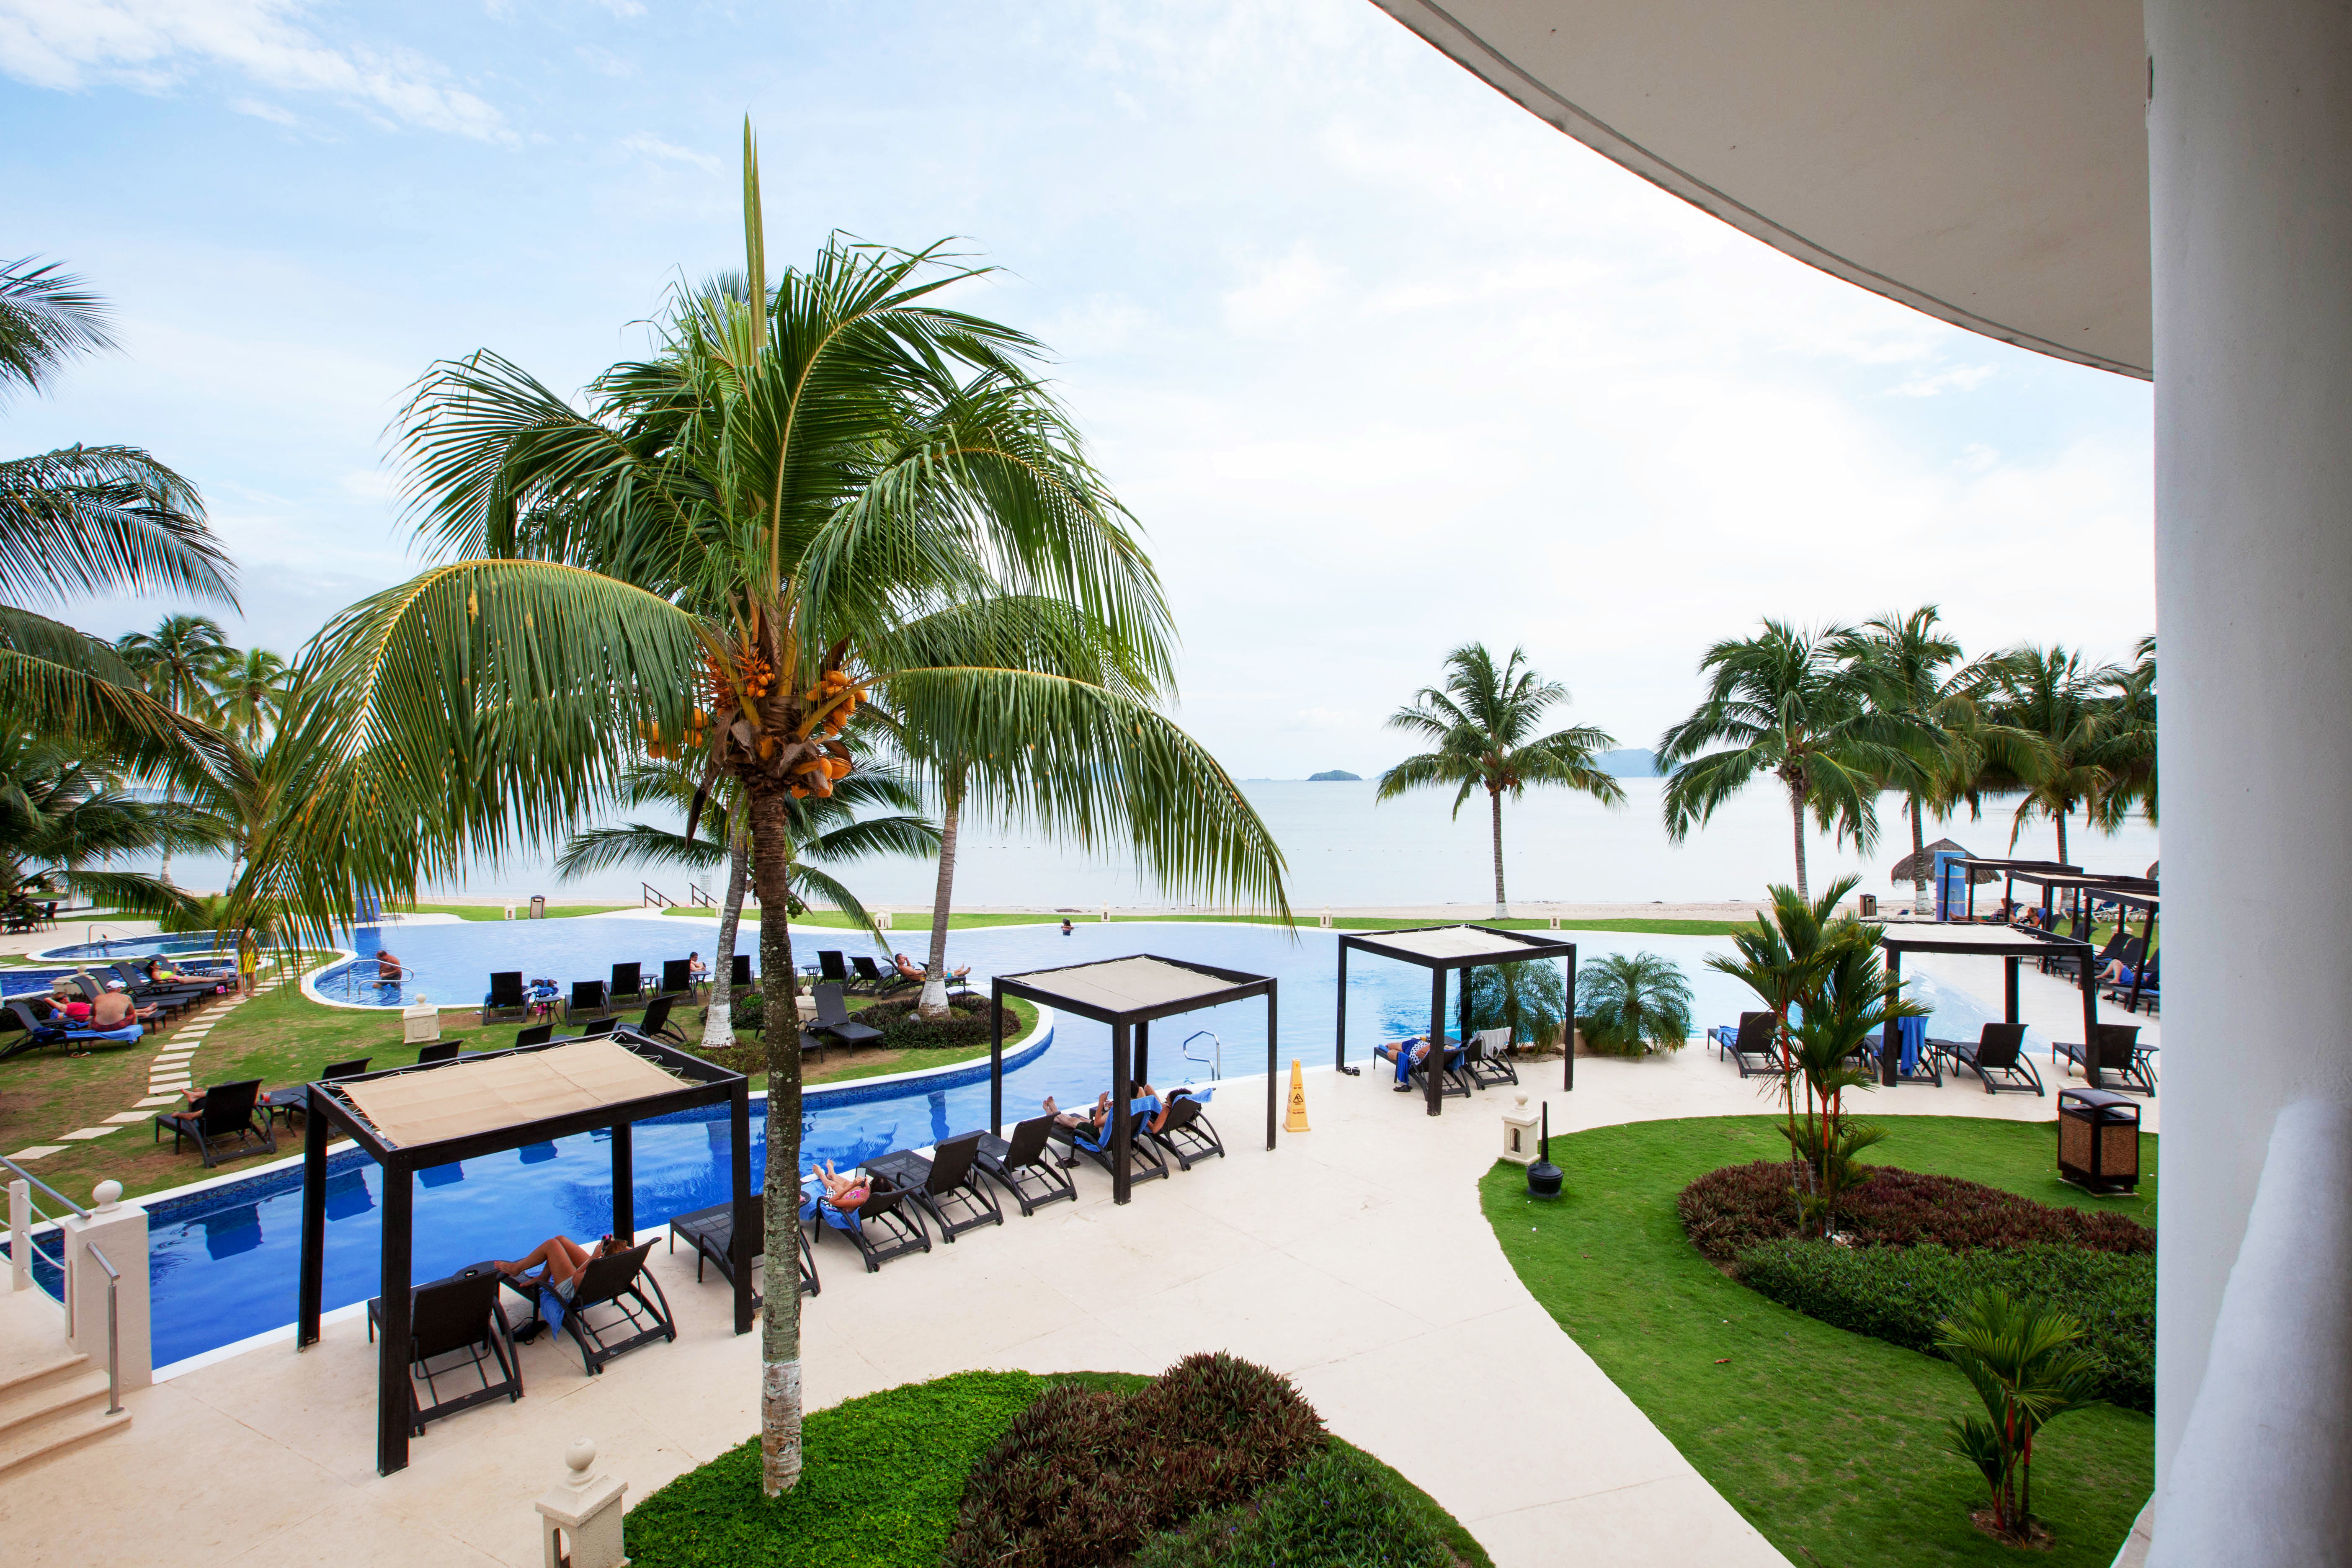 Beachfront Family Play Pool Resort sky tree grass palm leisure property caribbean swimming pool arecales Beach condominium Villa home palm family tropics Garden